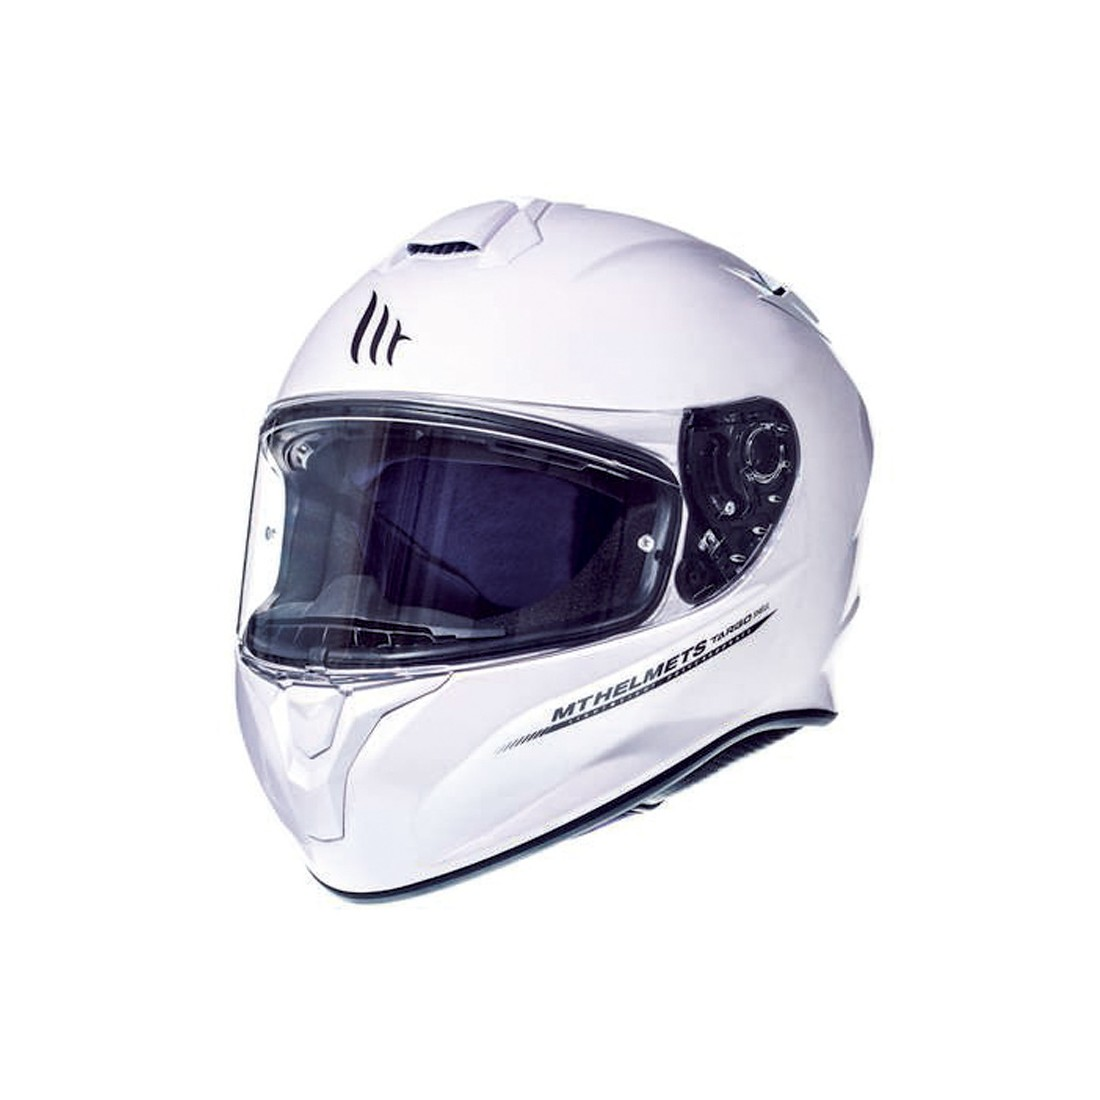 Casco MT FF106 TARGO Solid A0 Blanco Perla Brillo TALLA CASCO XS